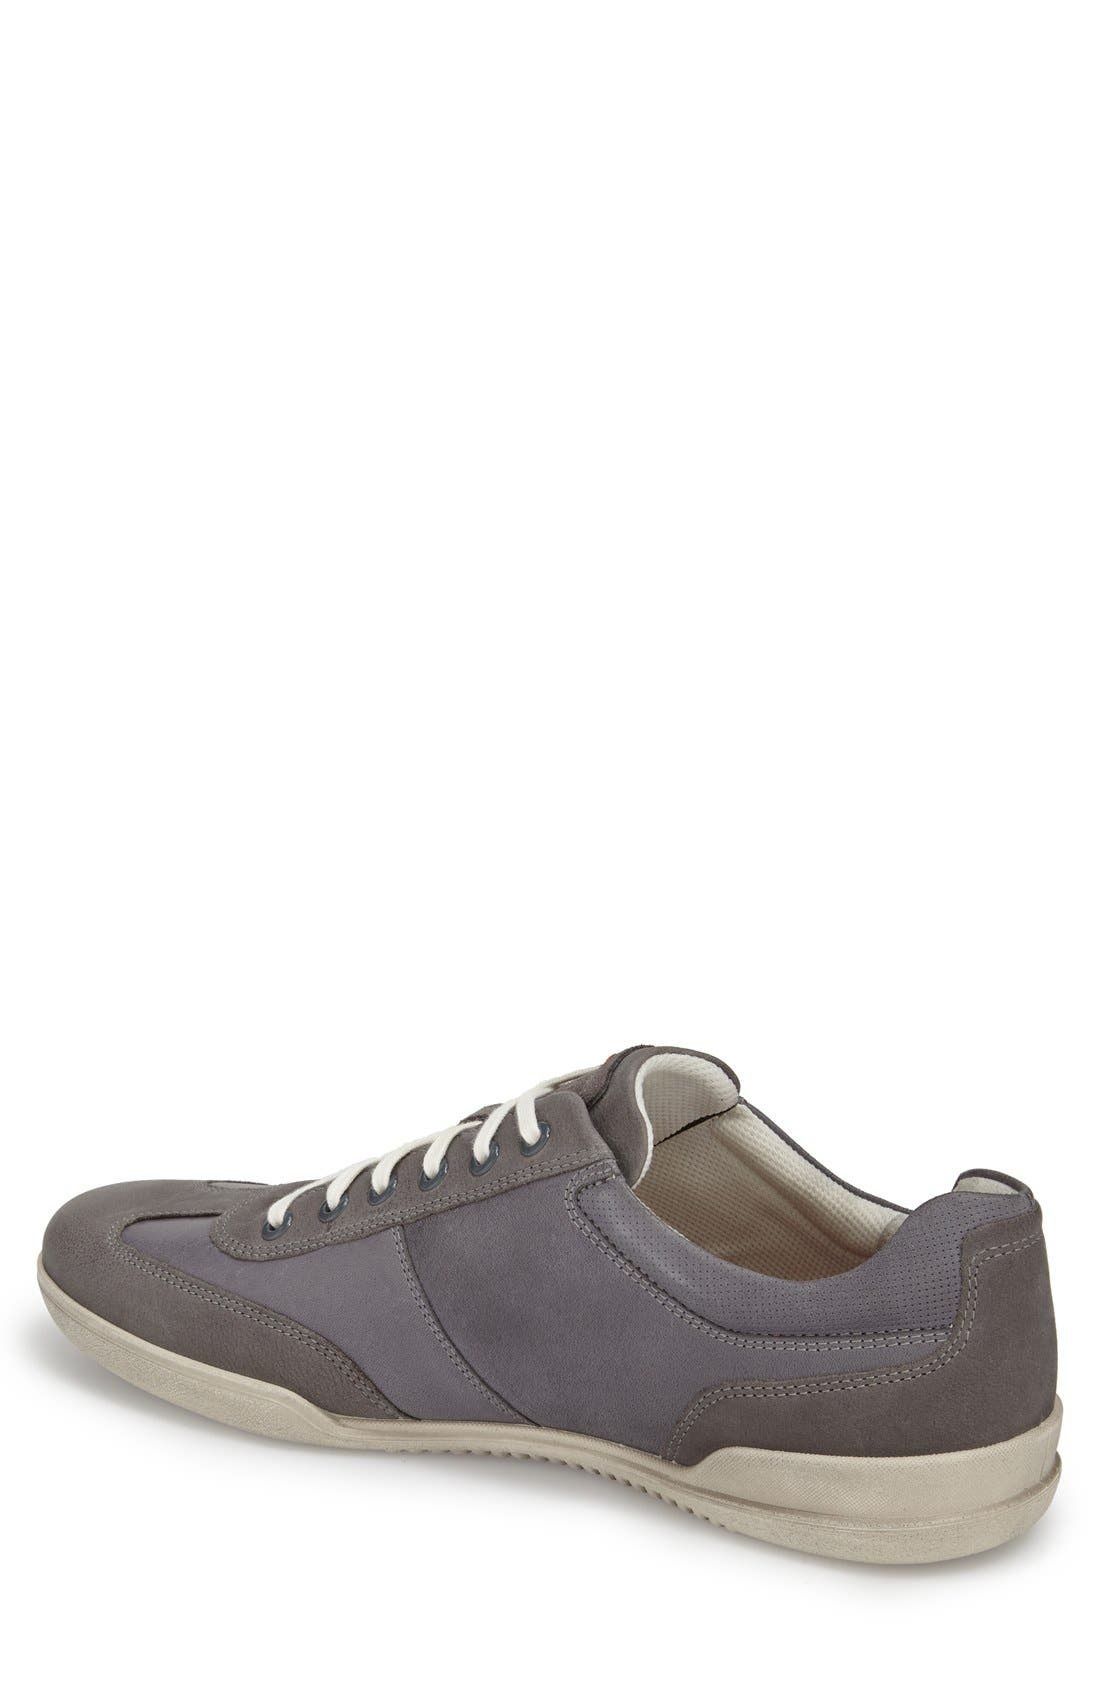 'Enrico' Sneaker,                             Alternate thumbnail 2, color,                             Moonless Leather